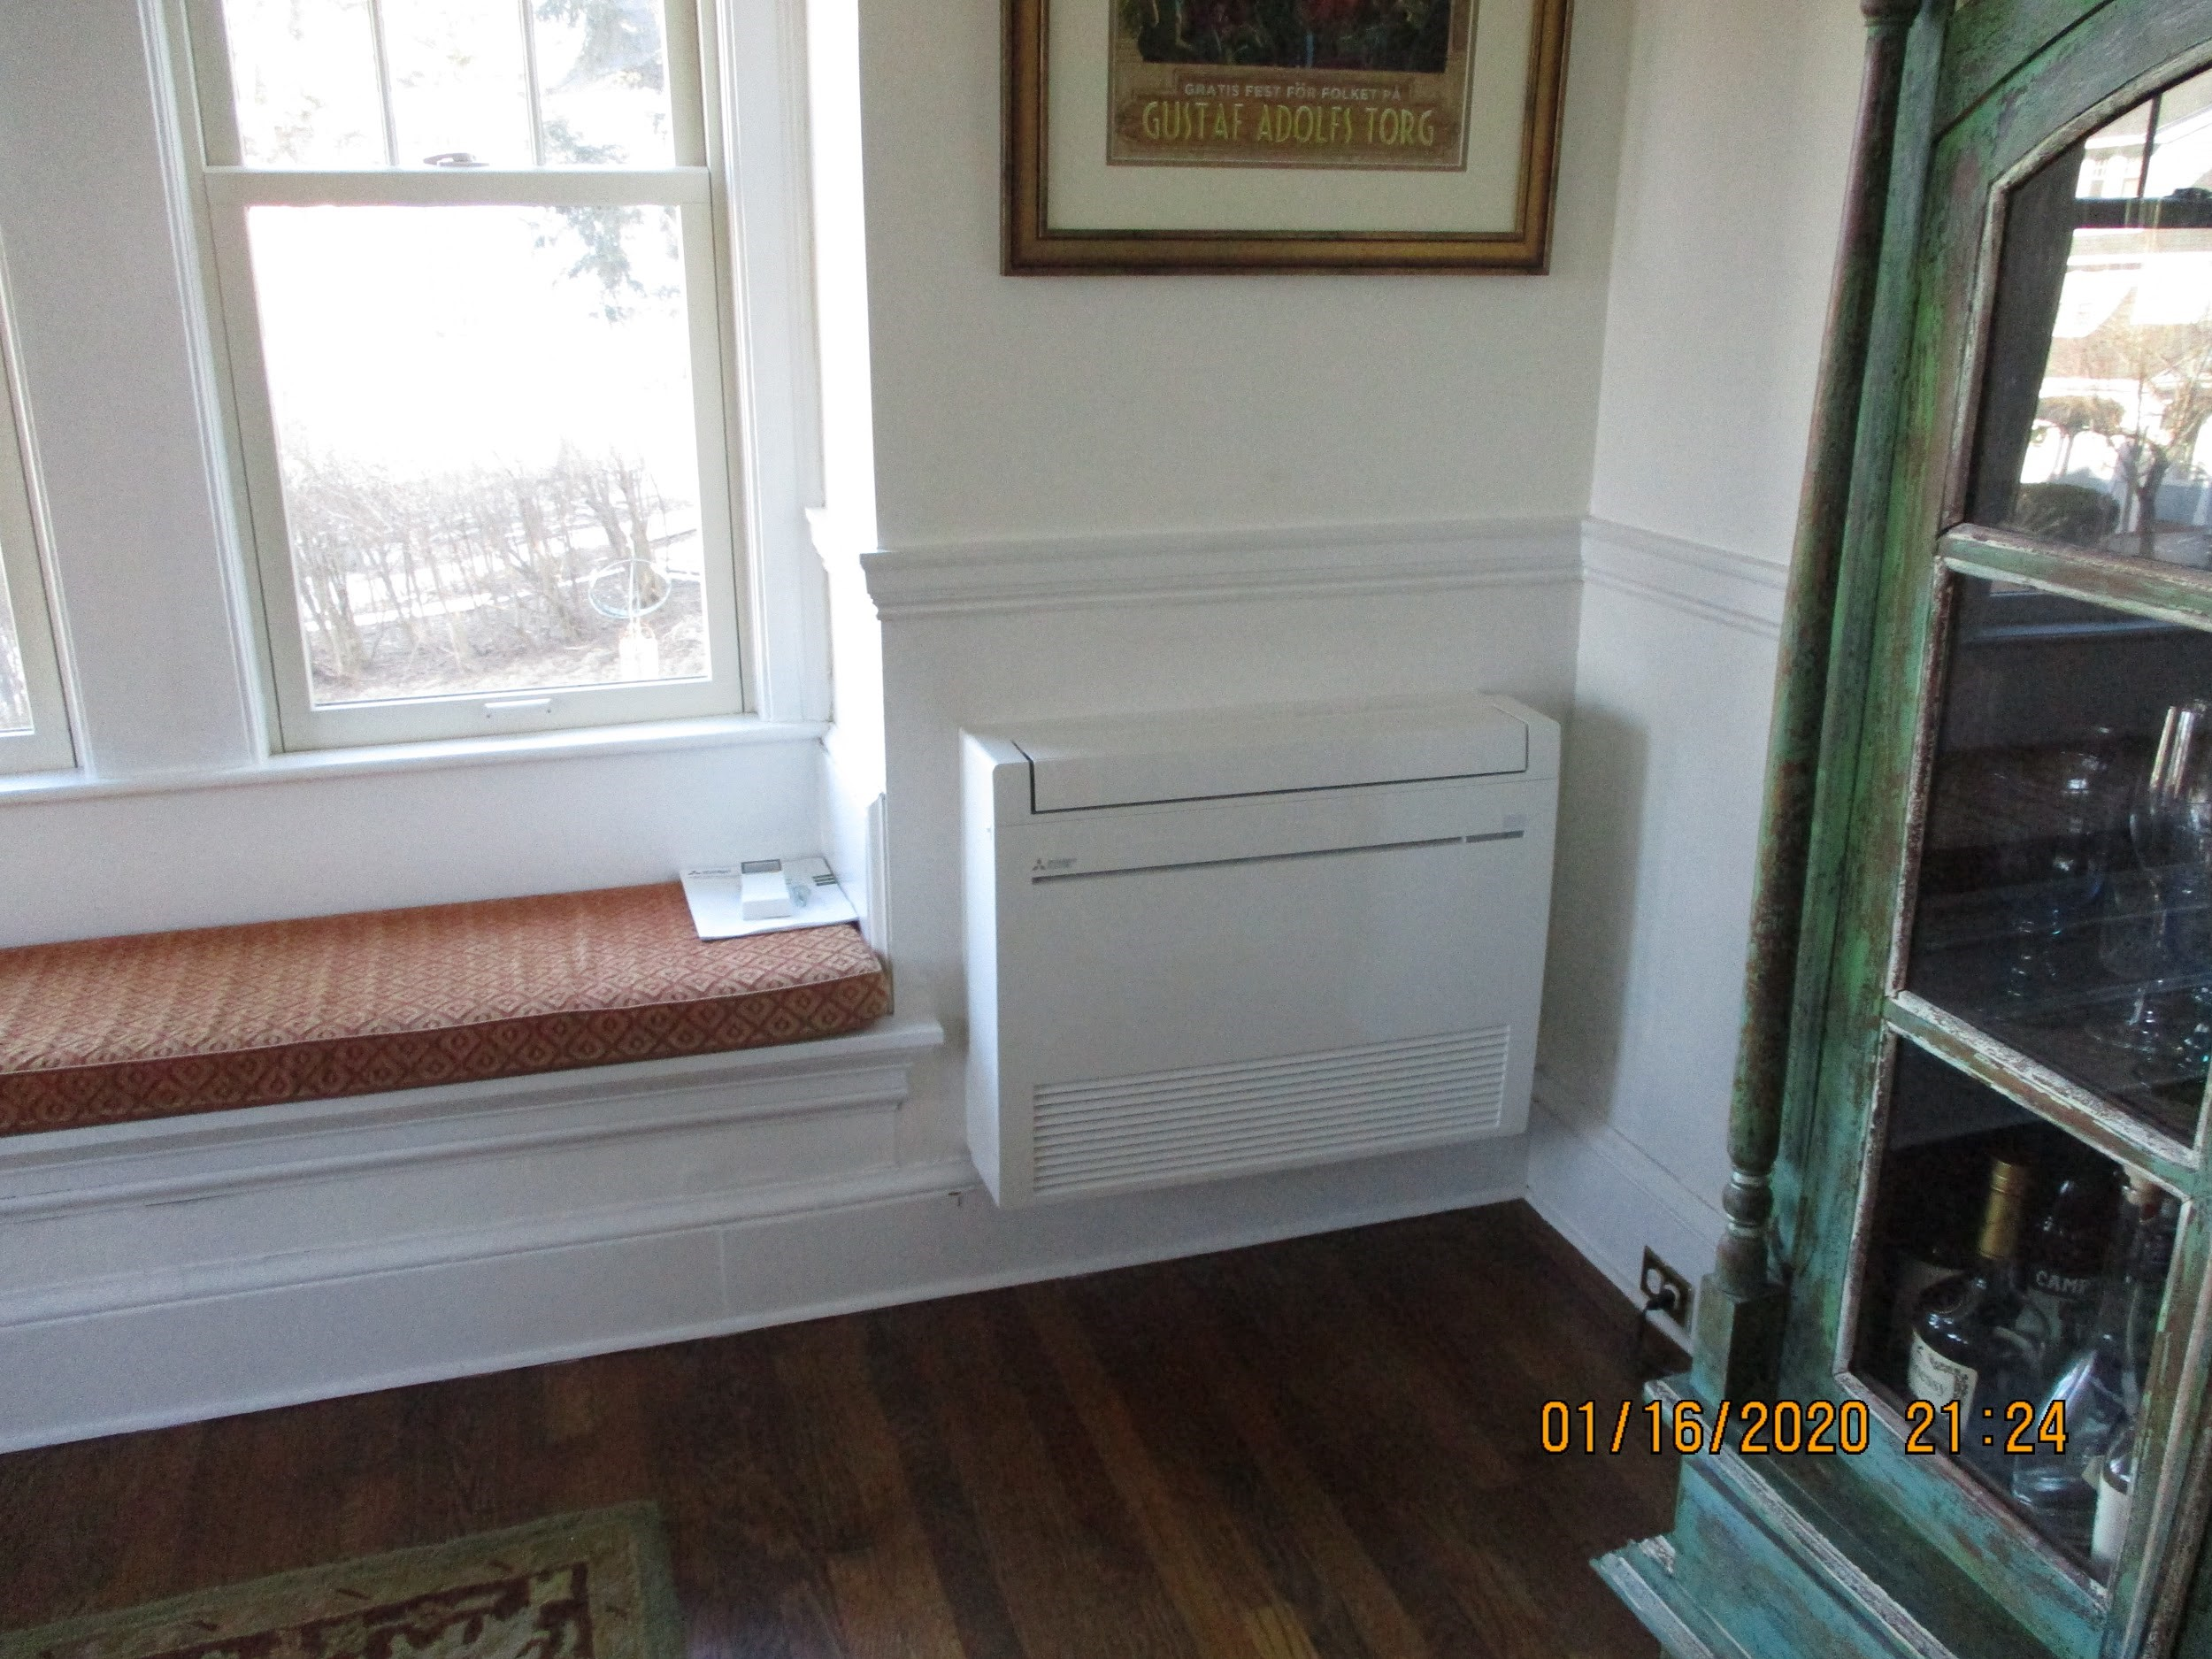 Example of a floor-mounted ductless AC unit in MA home.